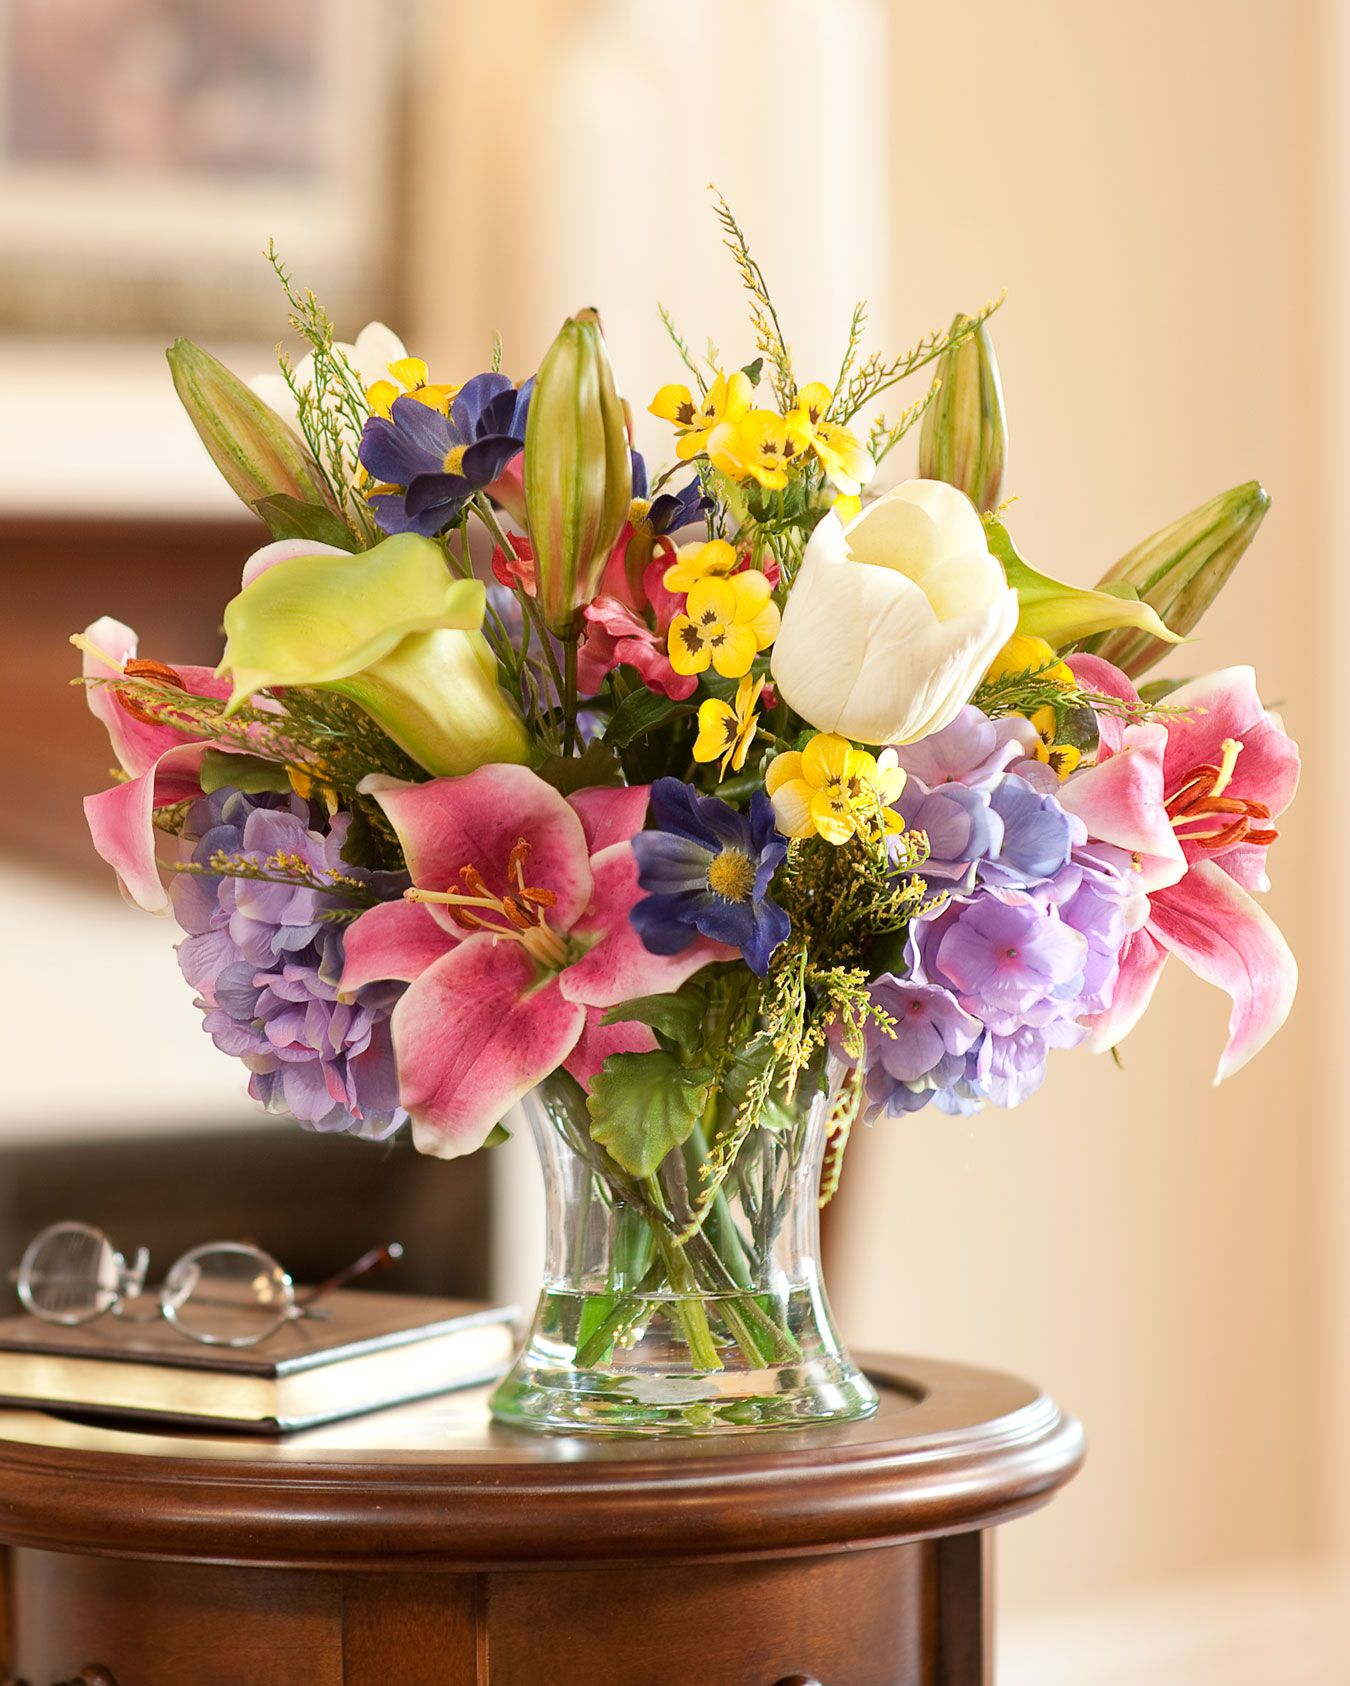 Decorate The House With Artificial Flowers For Your Home Inspiration